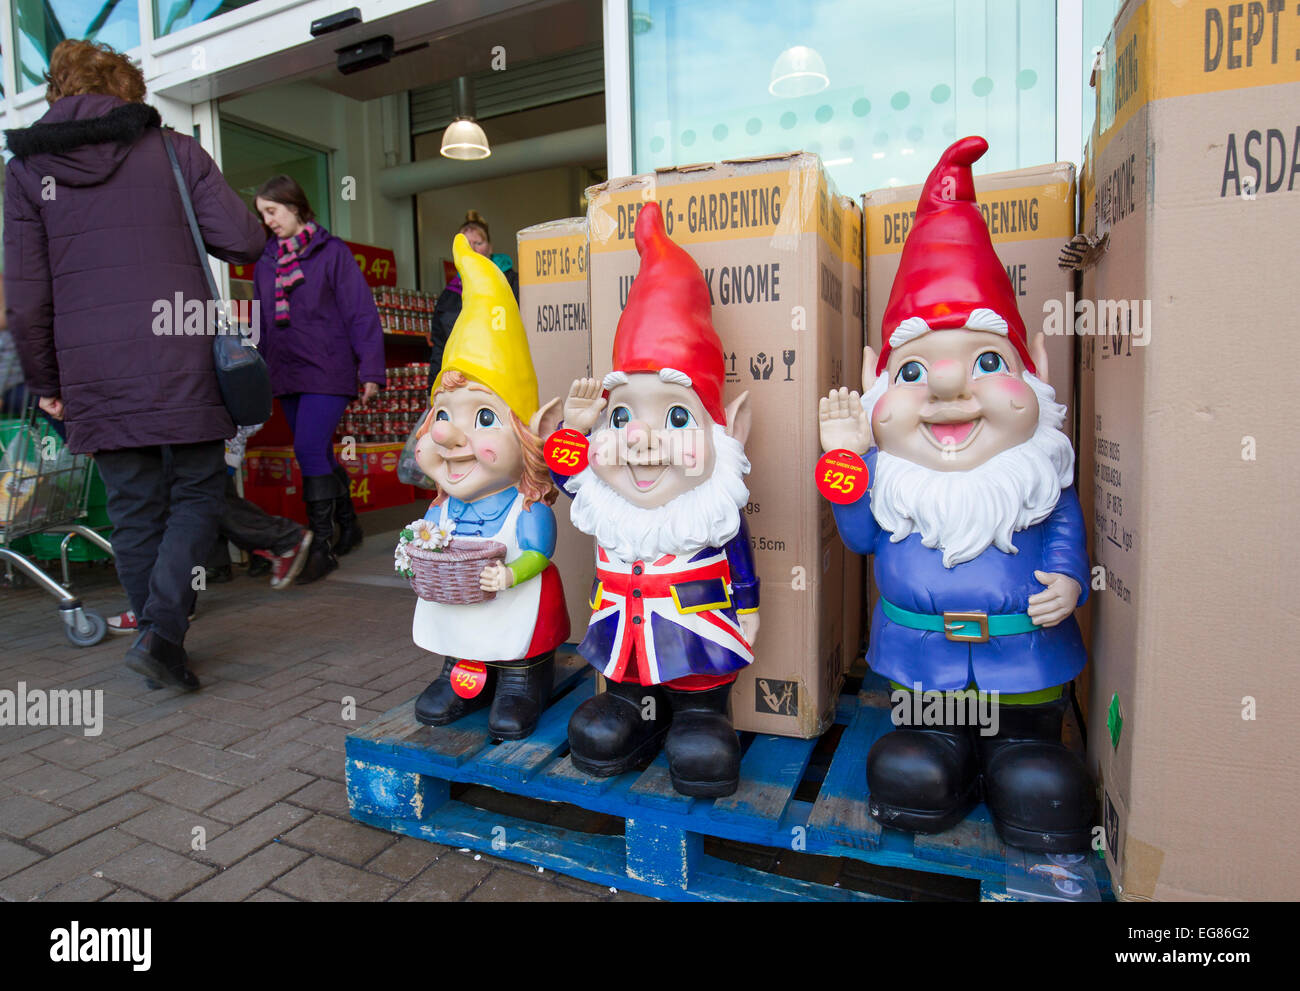 Page 3 Garden Ornaments For Sale High Resolution Stock Photography And Images Alamy